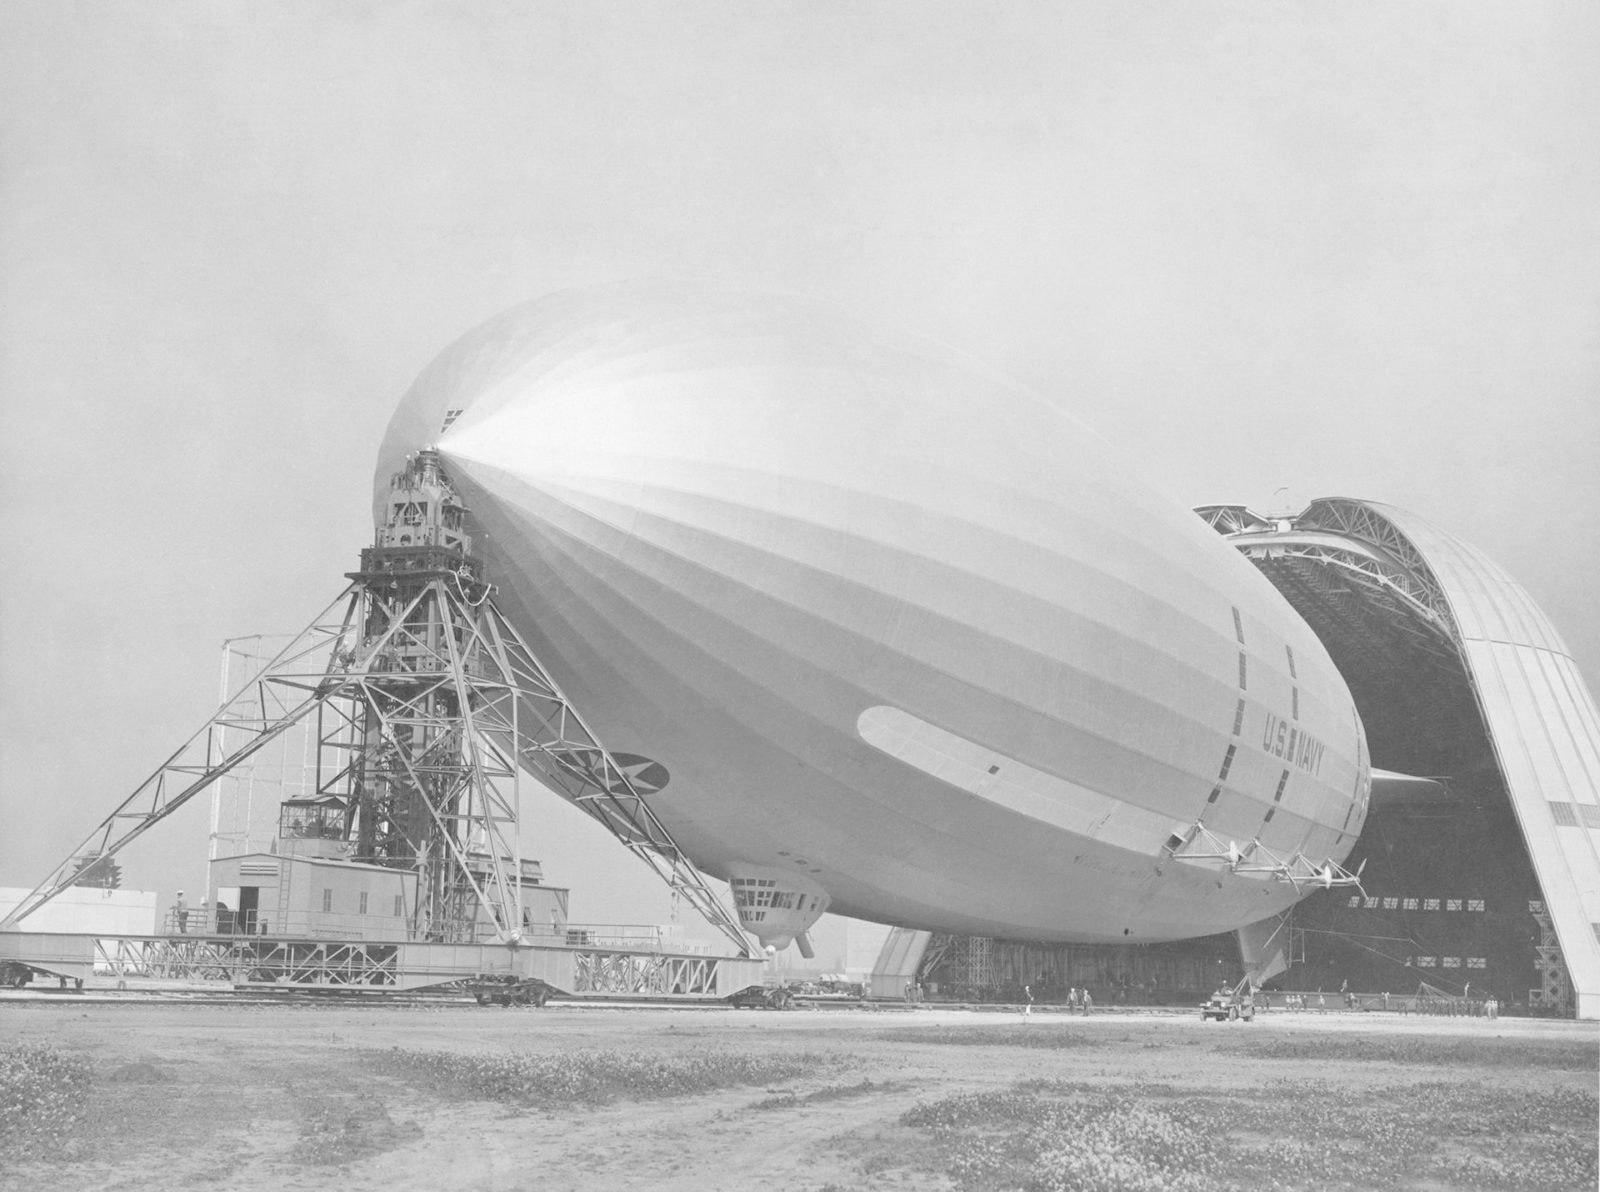 Navy USS Macon leaving Hanger 1 prior to flight from NAS Sunnyvale, CA ARC-1969-A91-0261-18